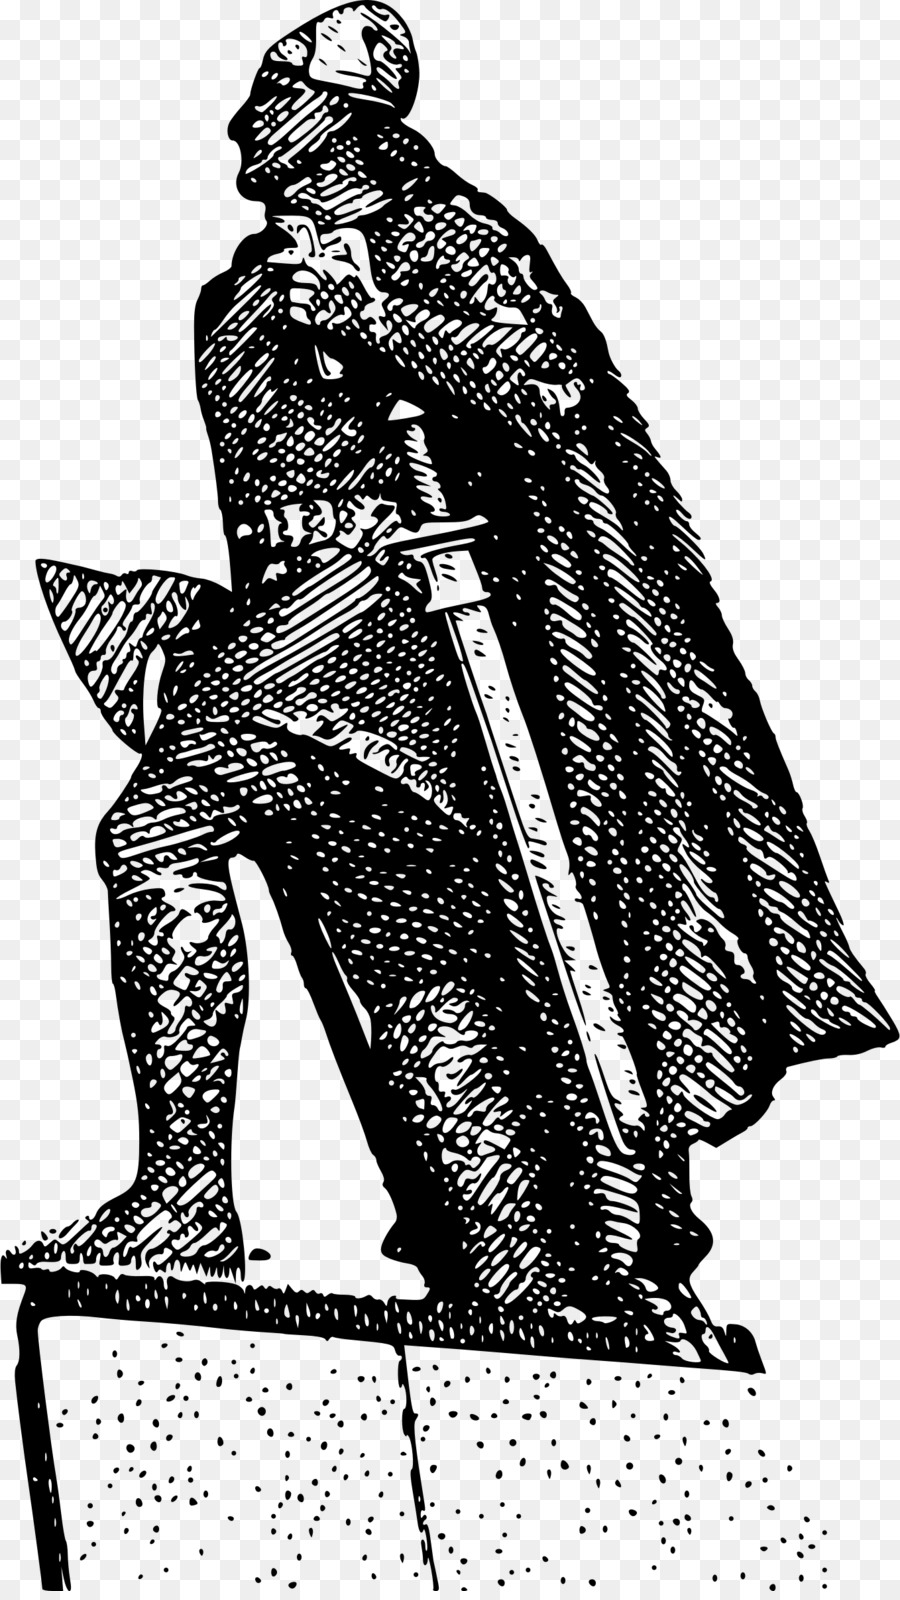 Leif erikson day clipart clip art freeuse library Knight Cartoon clipart - Knight, transparent clip art clip art freeuse library